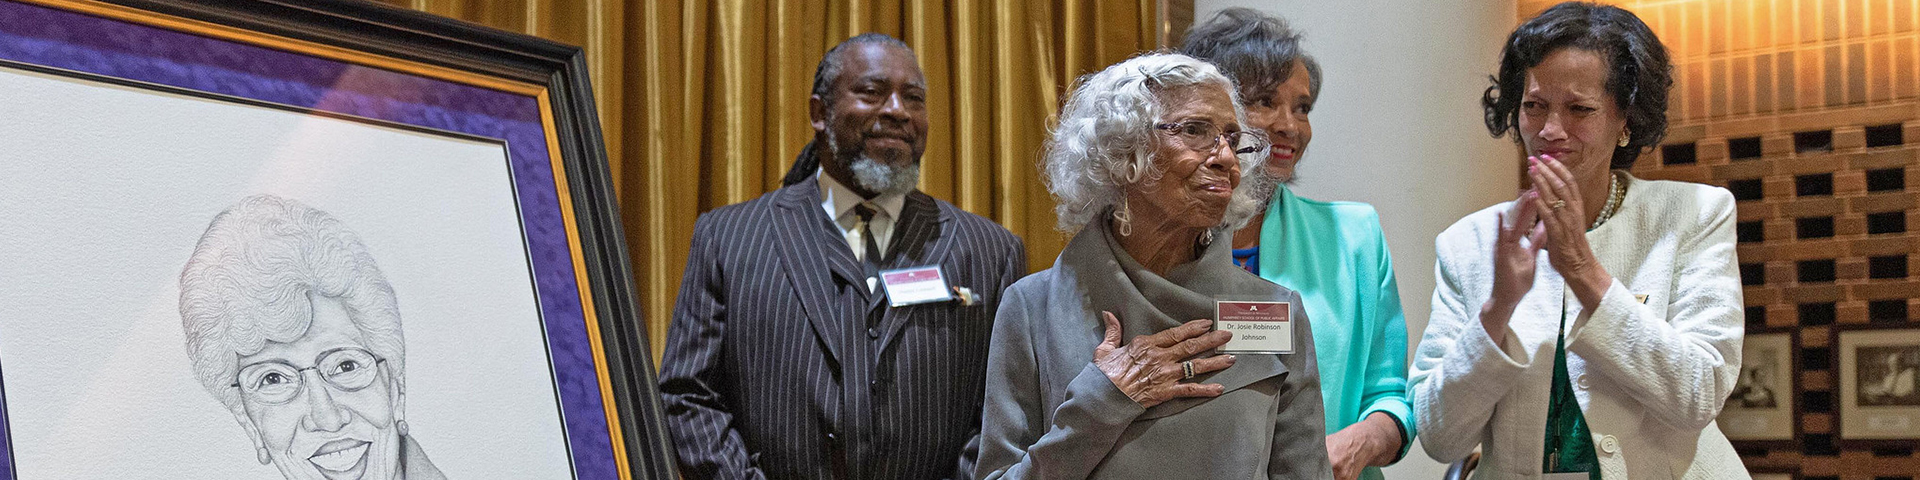 Josie Johnson views a portrait of her created for the dedication of the room at the Humphrey School that bears her name. Three people stand in the background smiling.